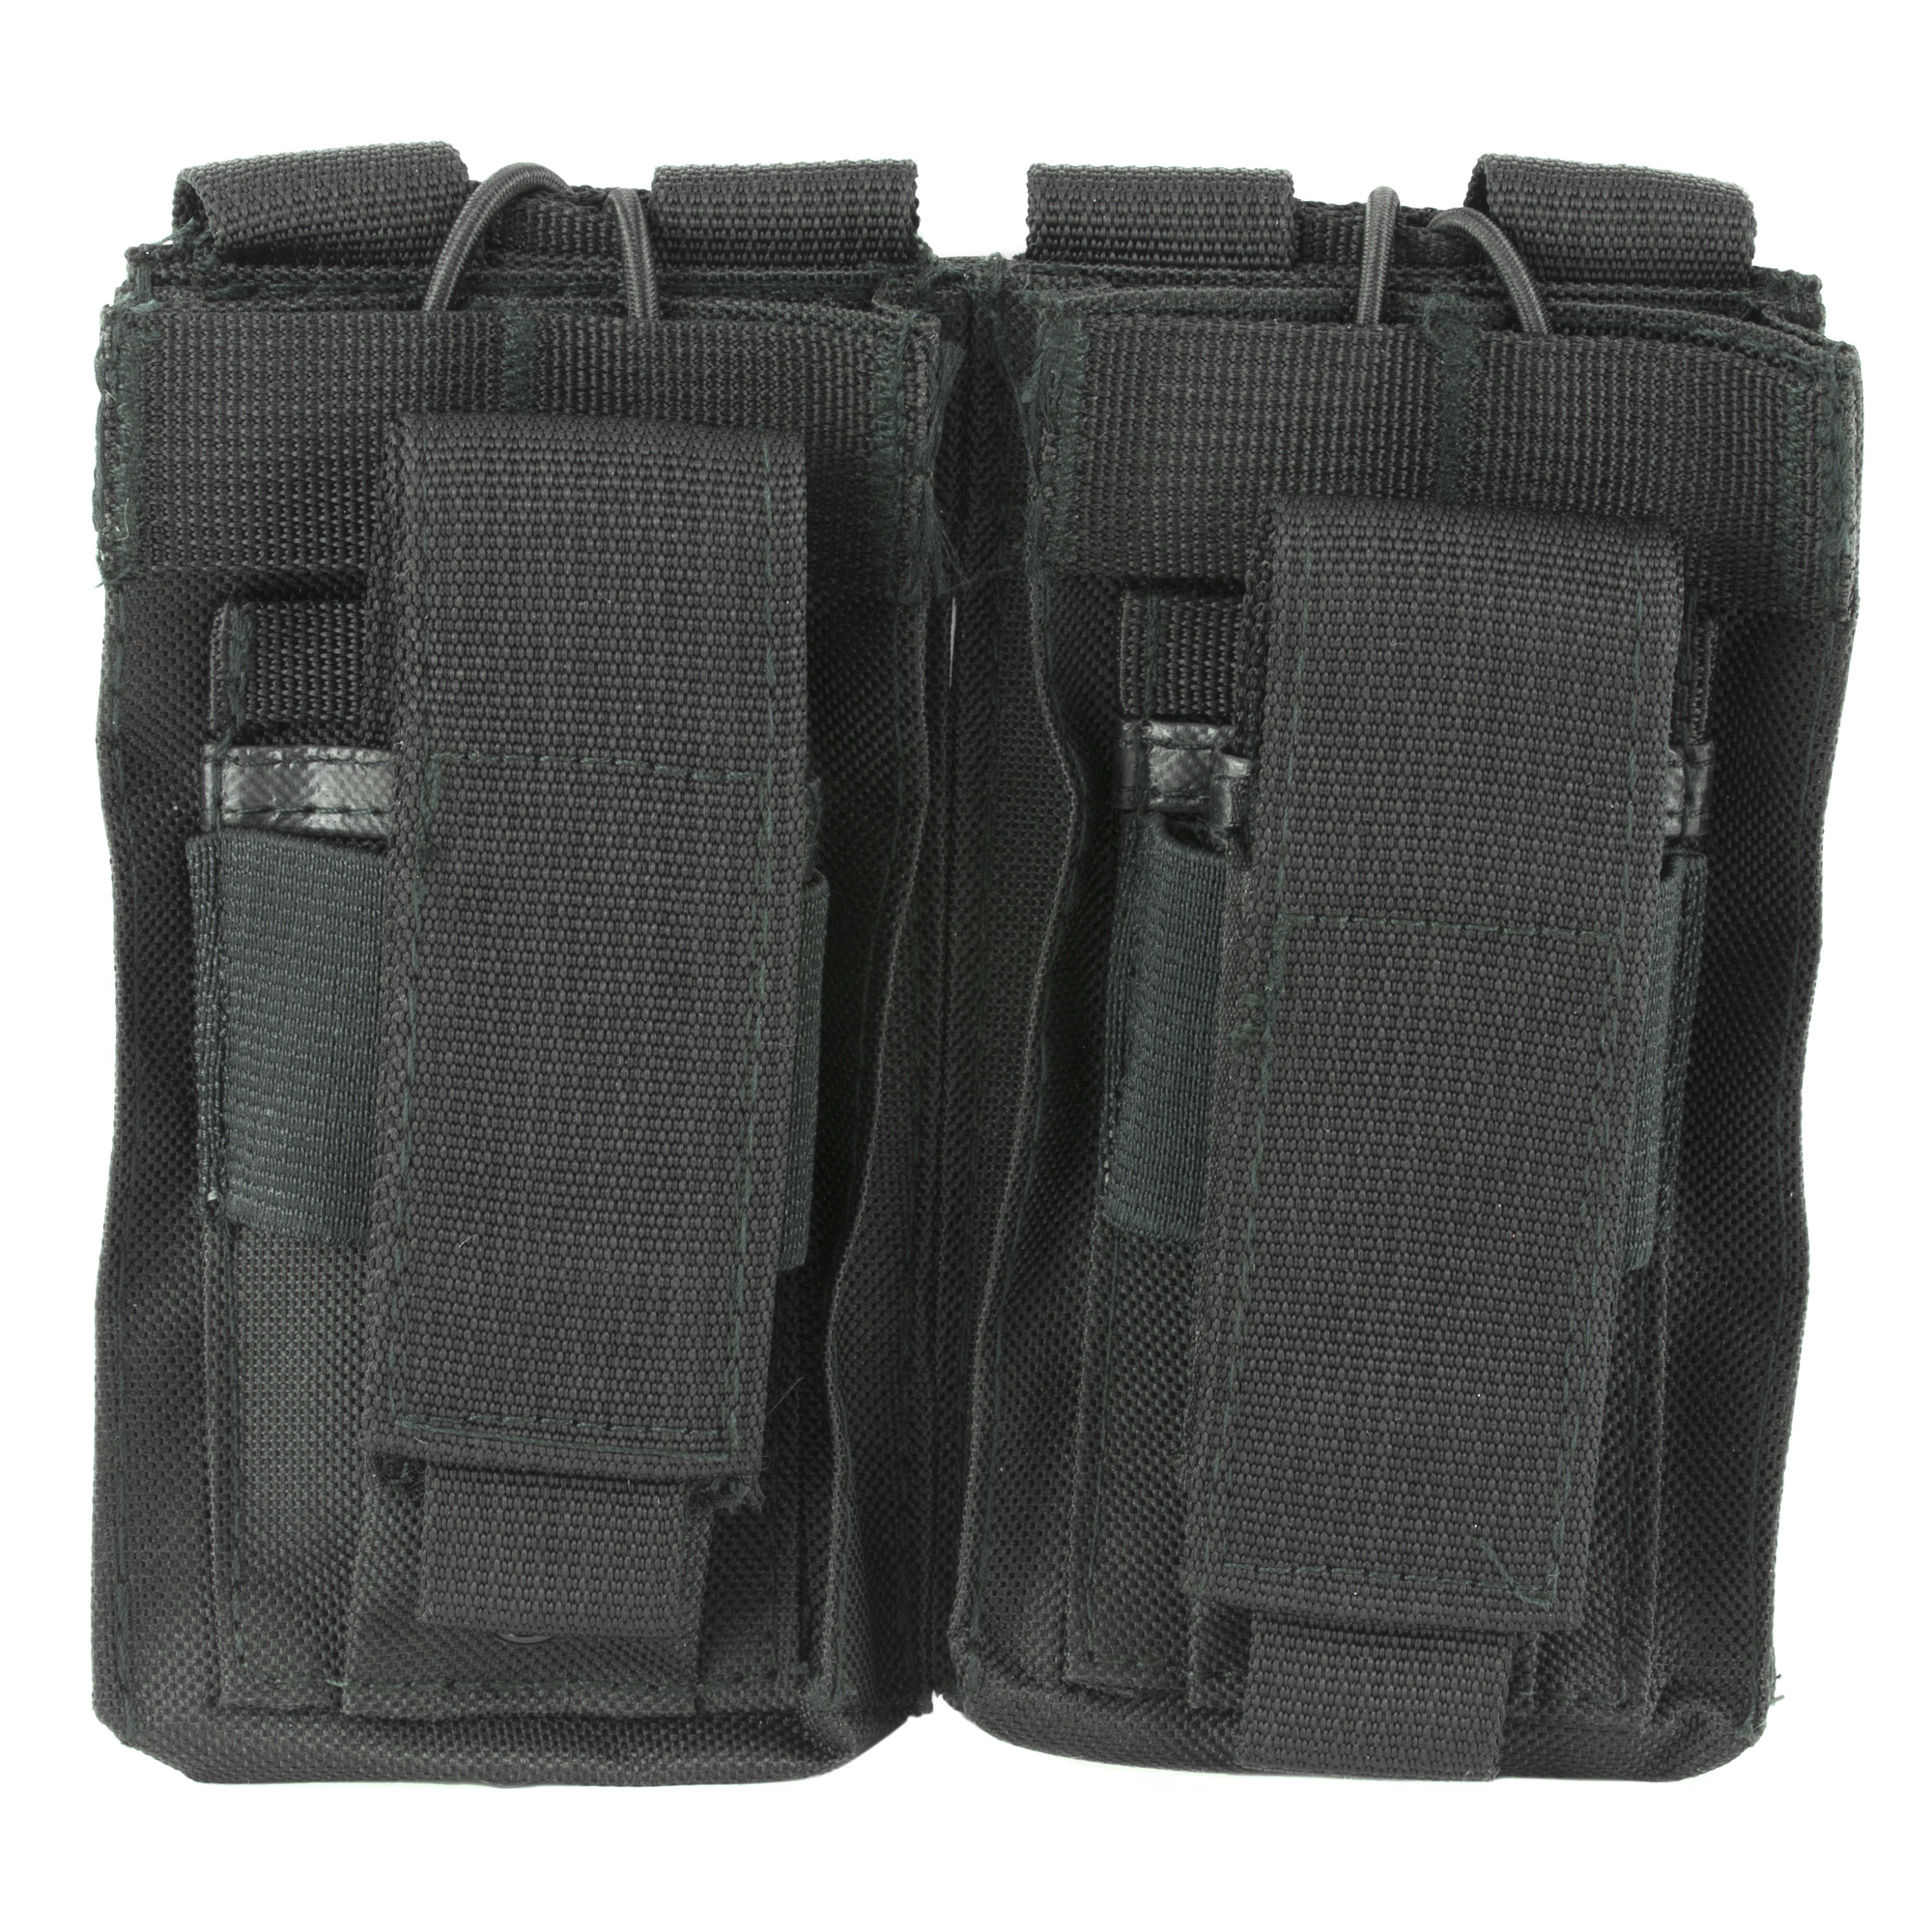 This double AR magazine pouch holds two AR style 5.56/223 or 7.62x39 magazines. Adjustable Bungee Style Retention Straps make Access to your Magazines easy while securely holding them in place.